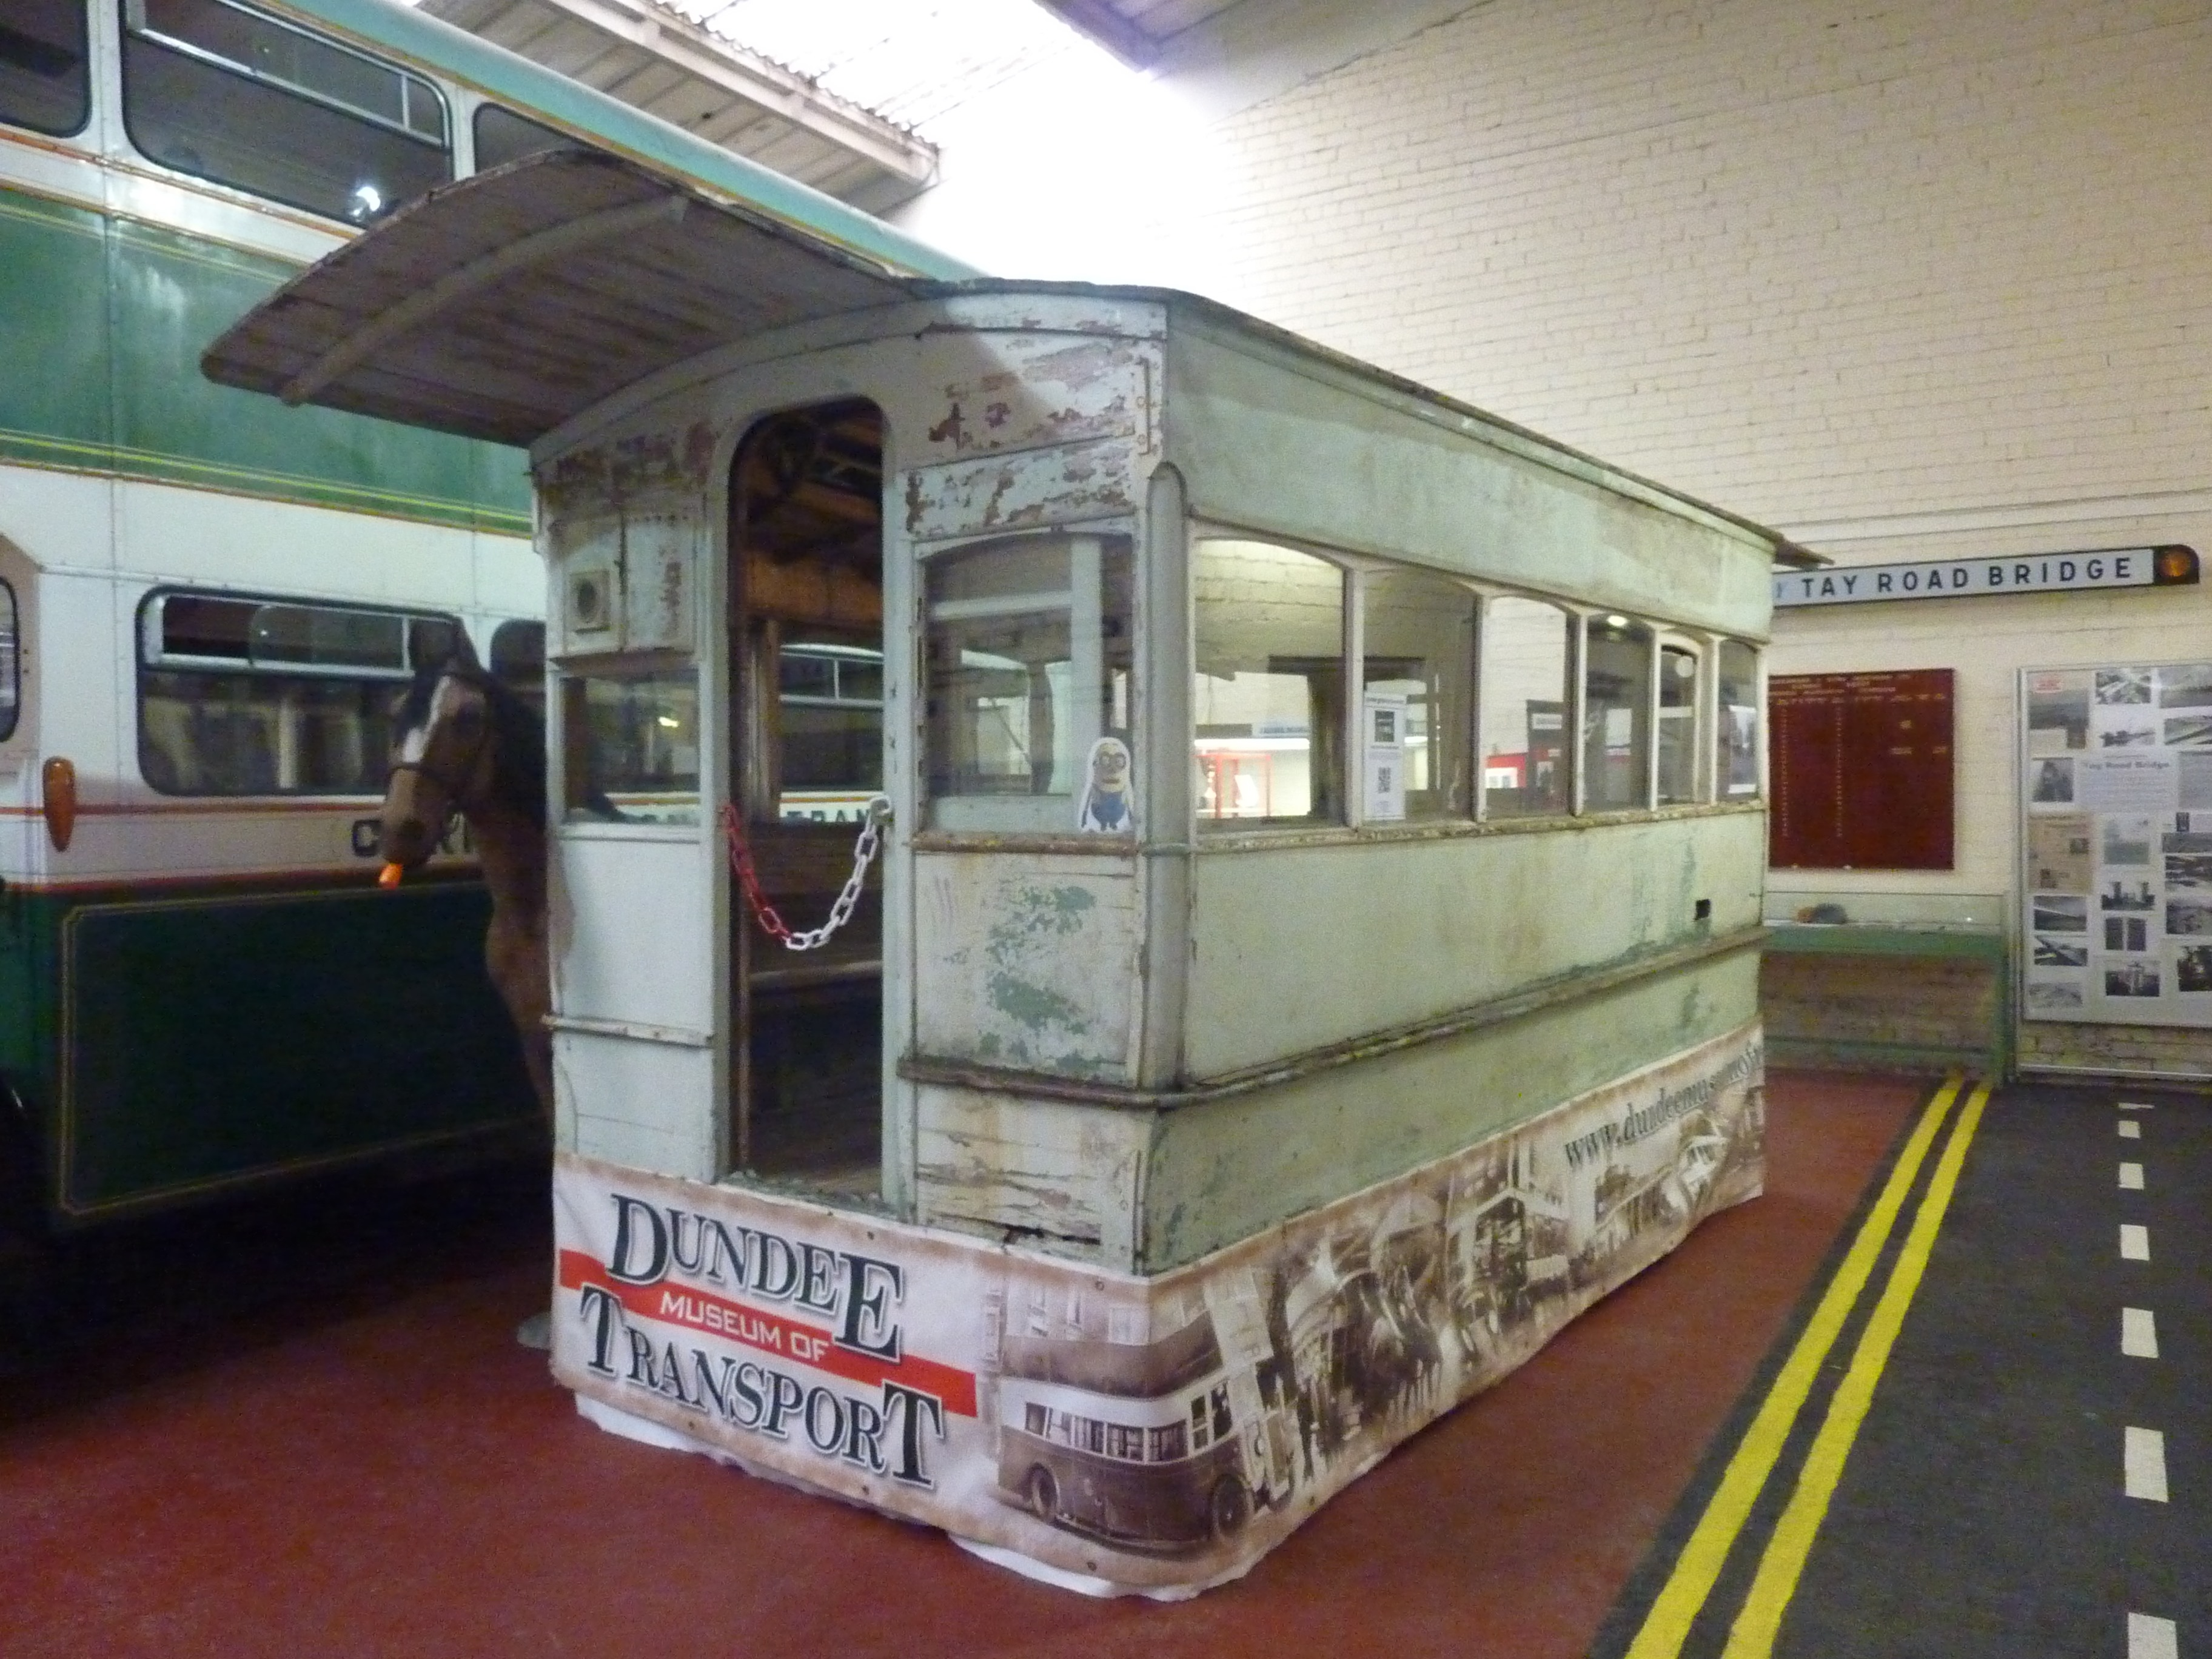 Dundee Museum Of Transport >> Dundee Museum Of Transport Ggreig Livejournal